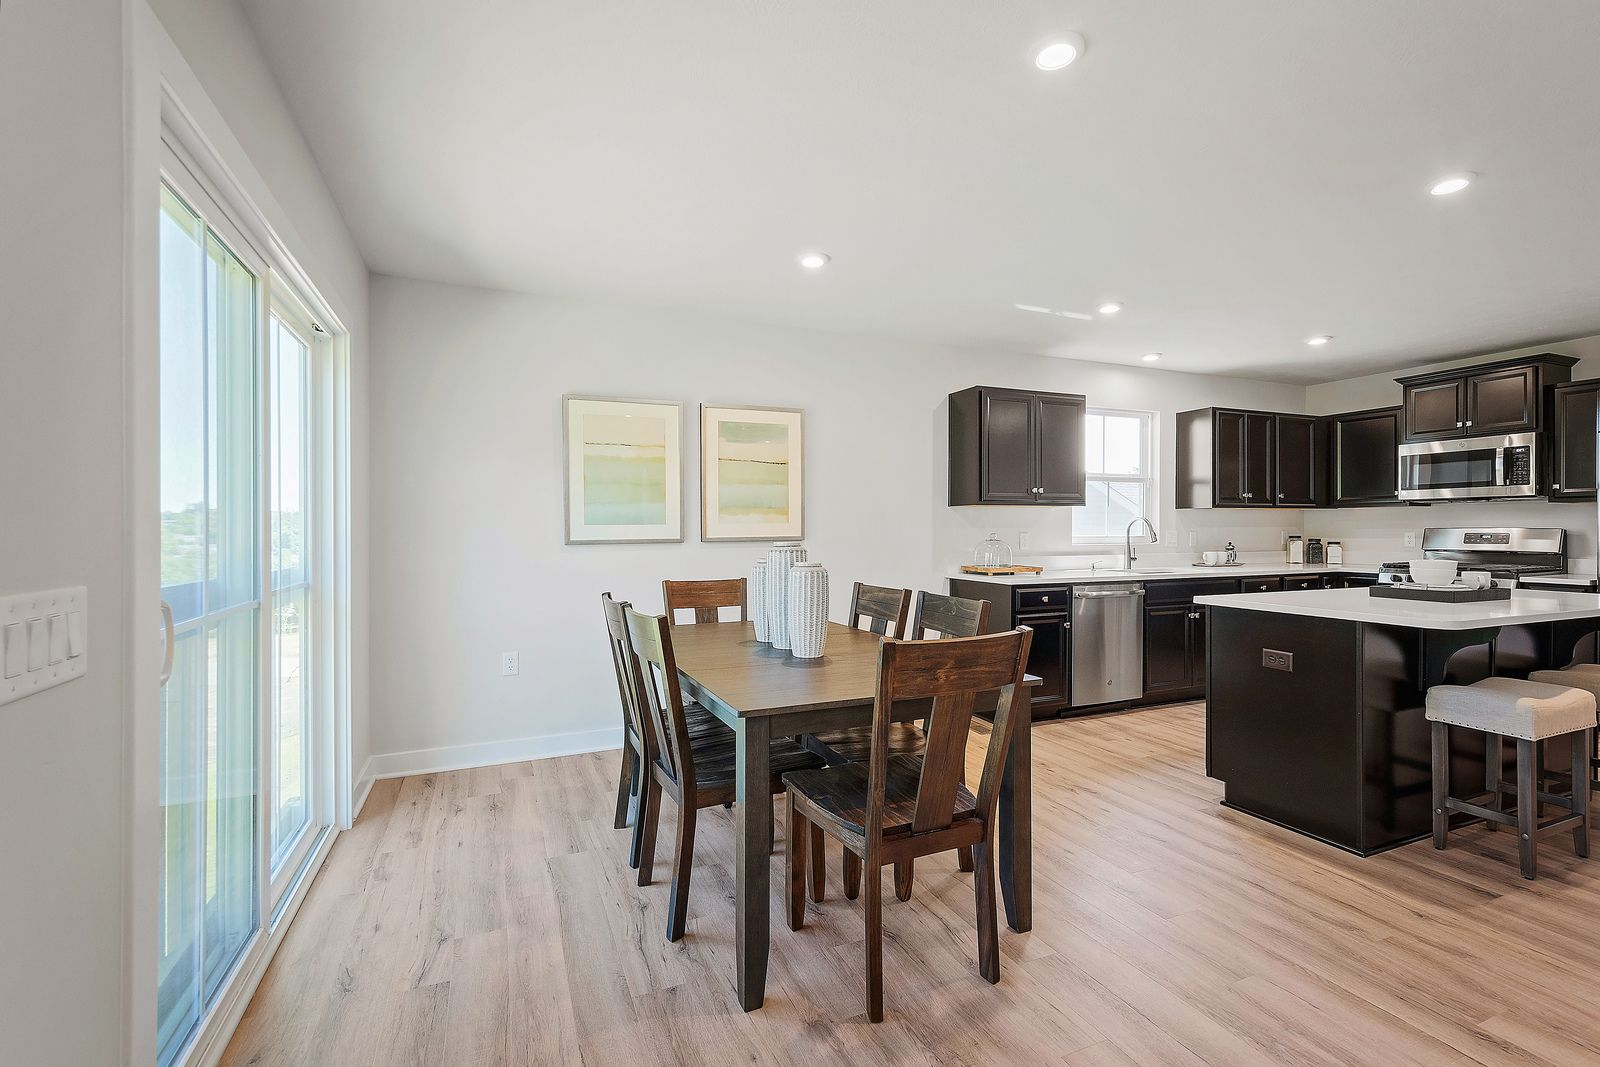 Kitchen featured in the Dominica Spring By Ryan Homes in Sussex, DE